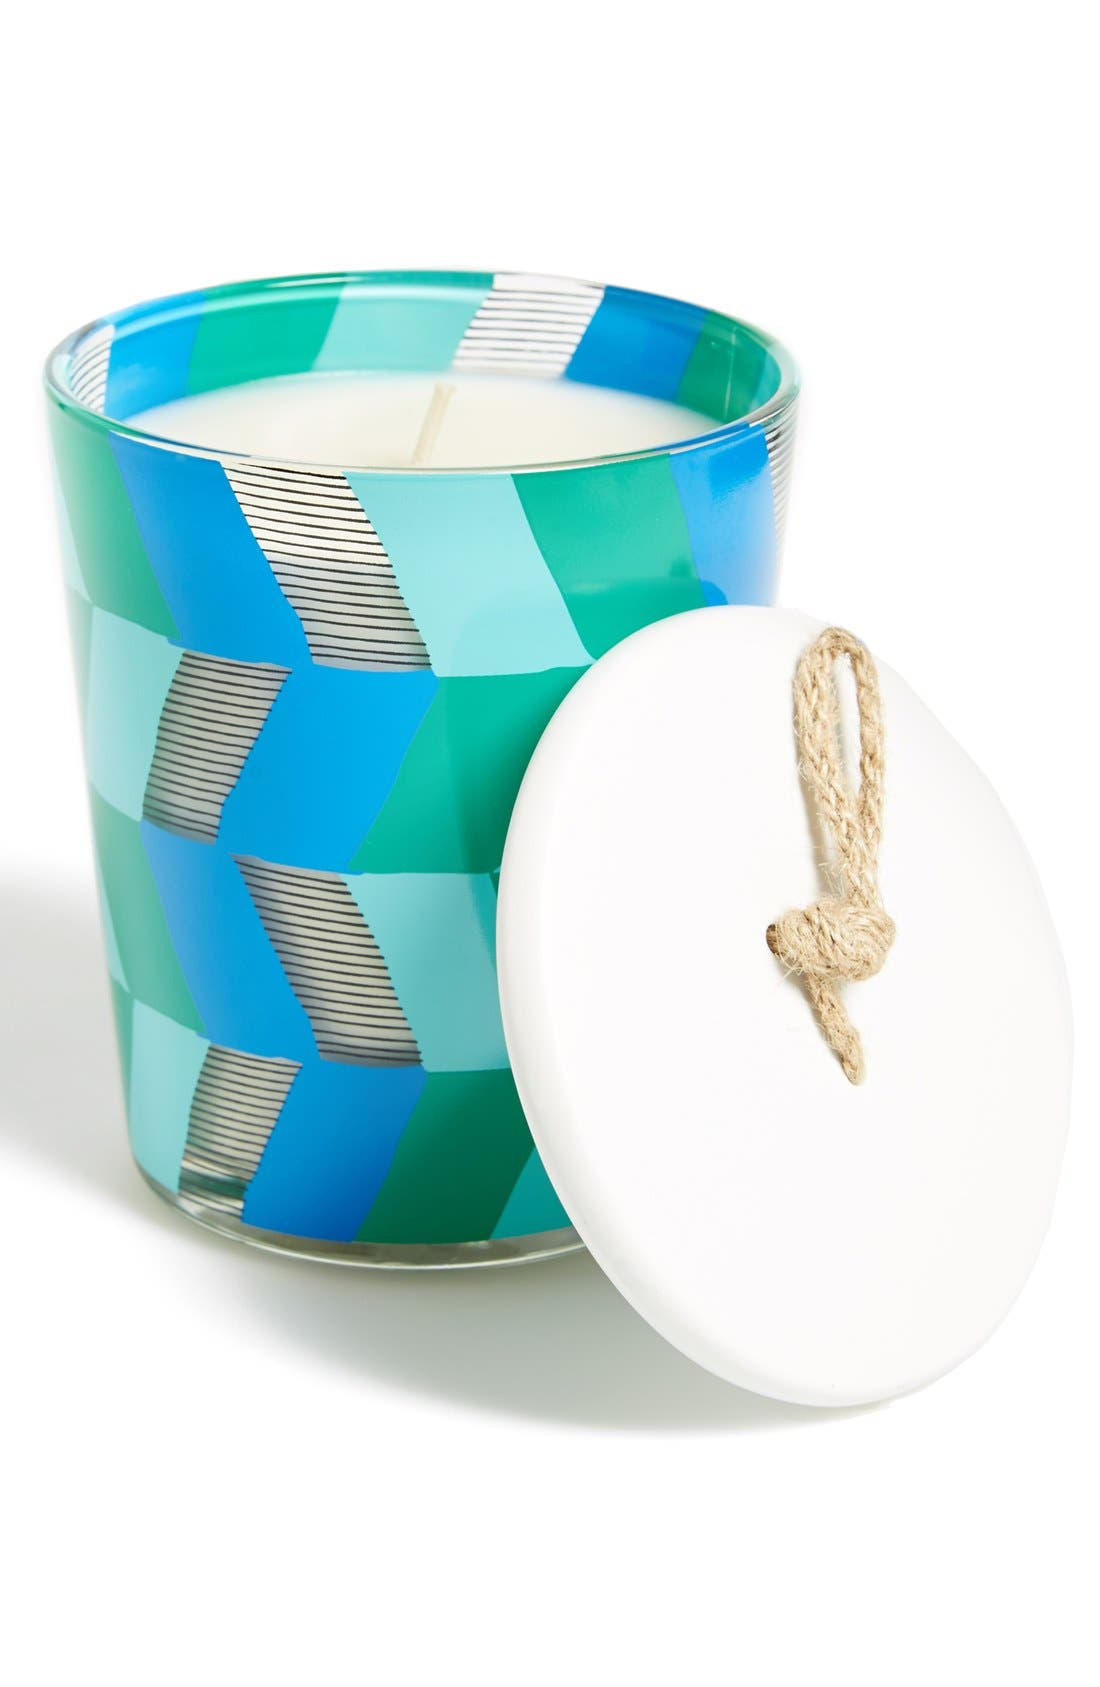 Main Image - ILLUME CANDLES 'Boho - Large' Jar Soy Candle